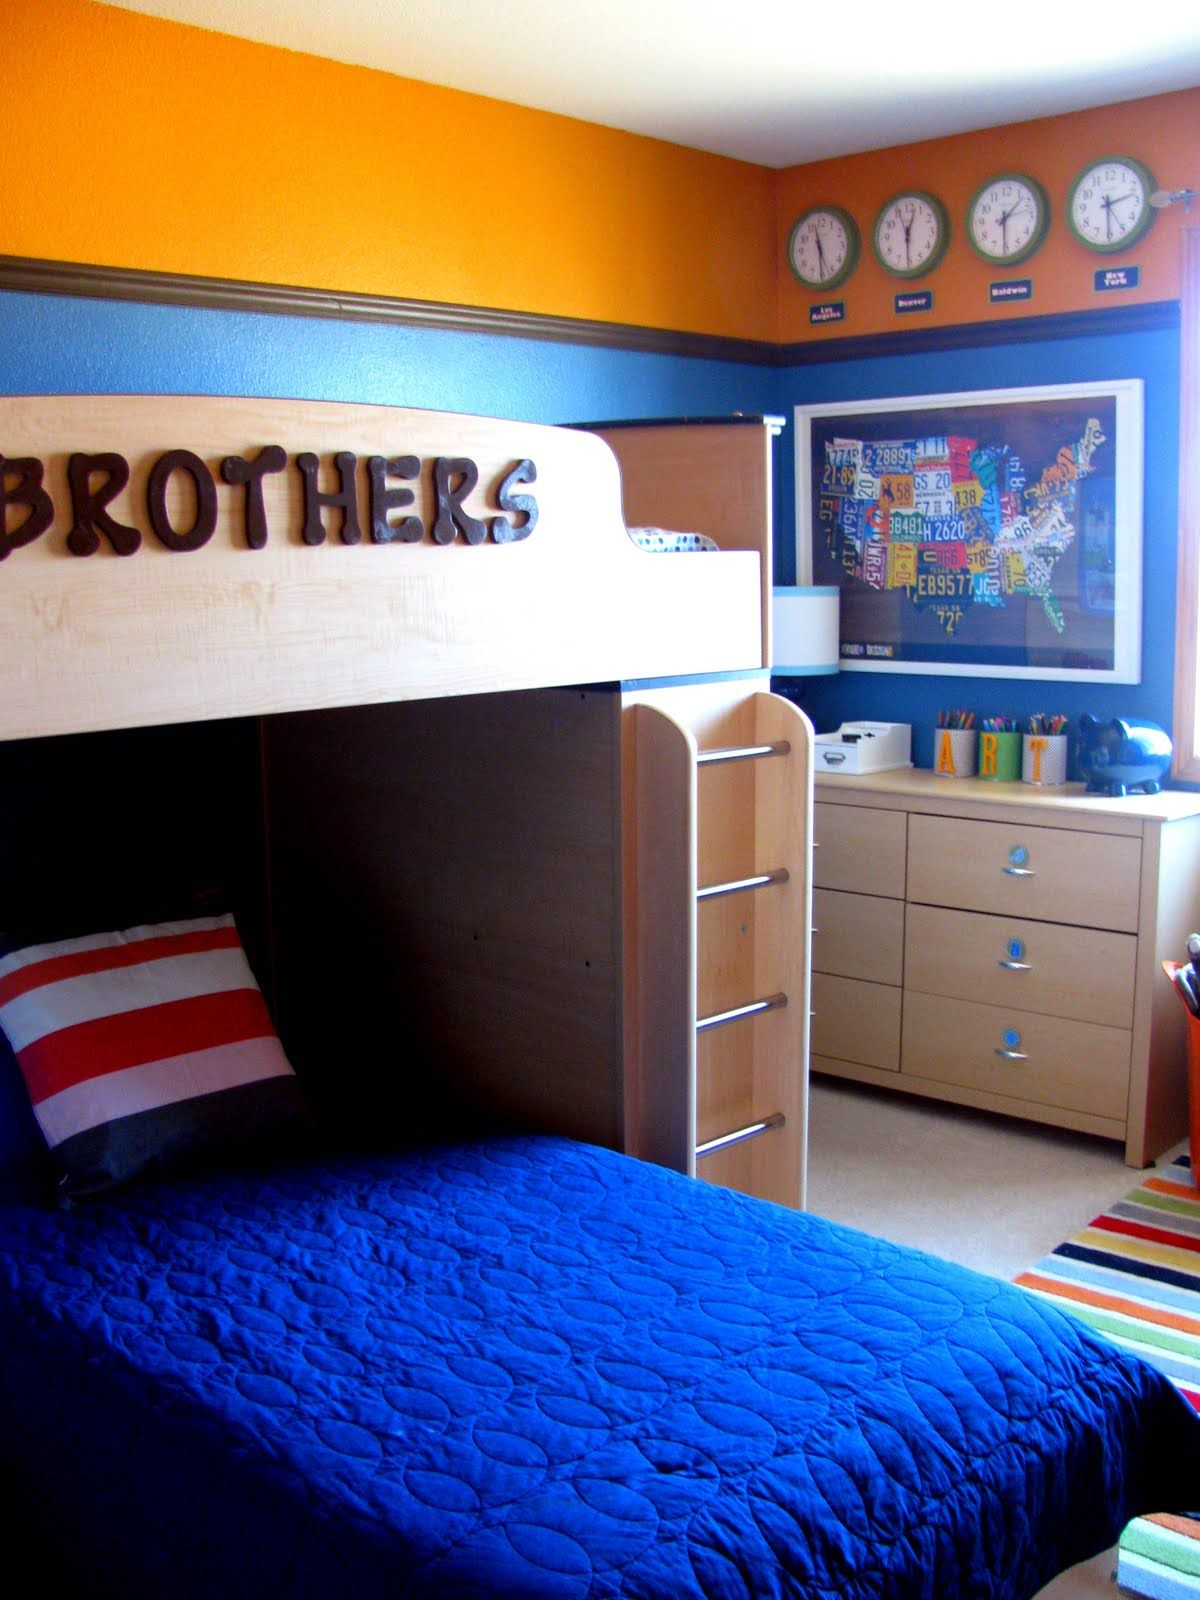 I Like the way the Bed says Brothers! Very Cute! | Home Sweet Home